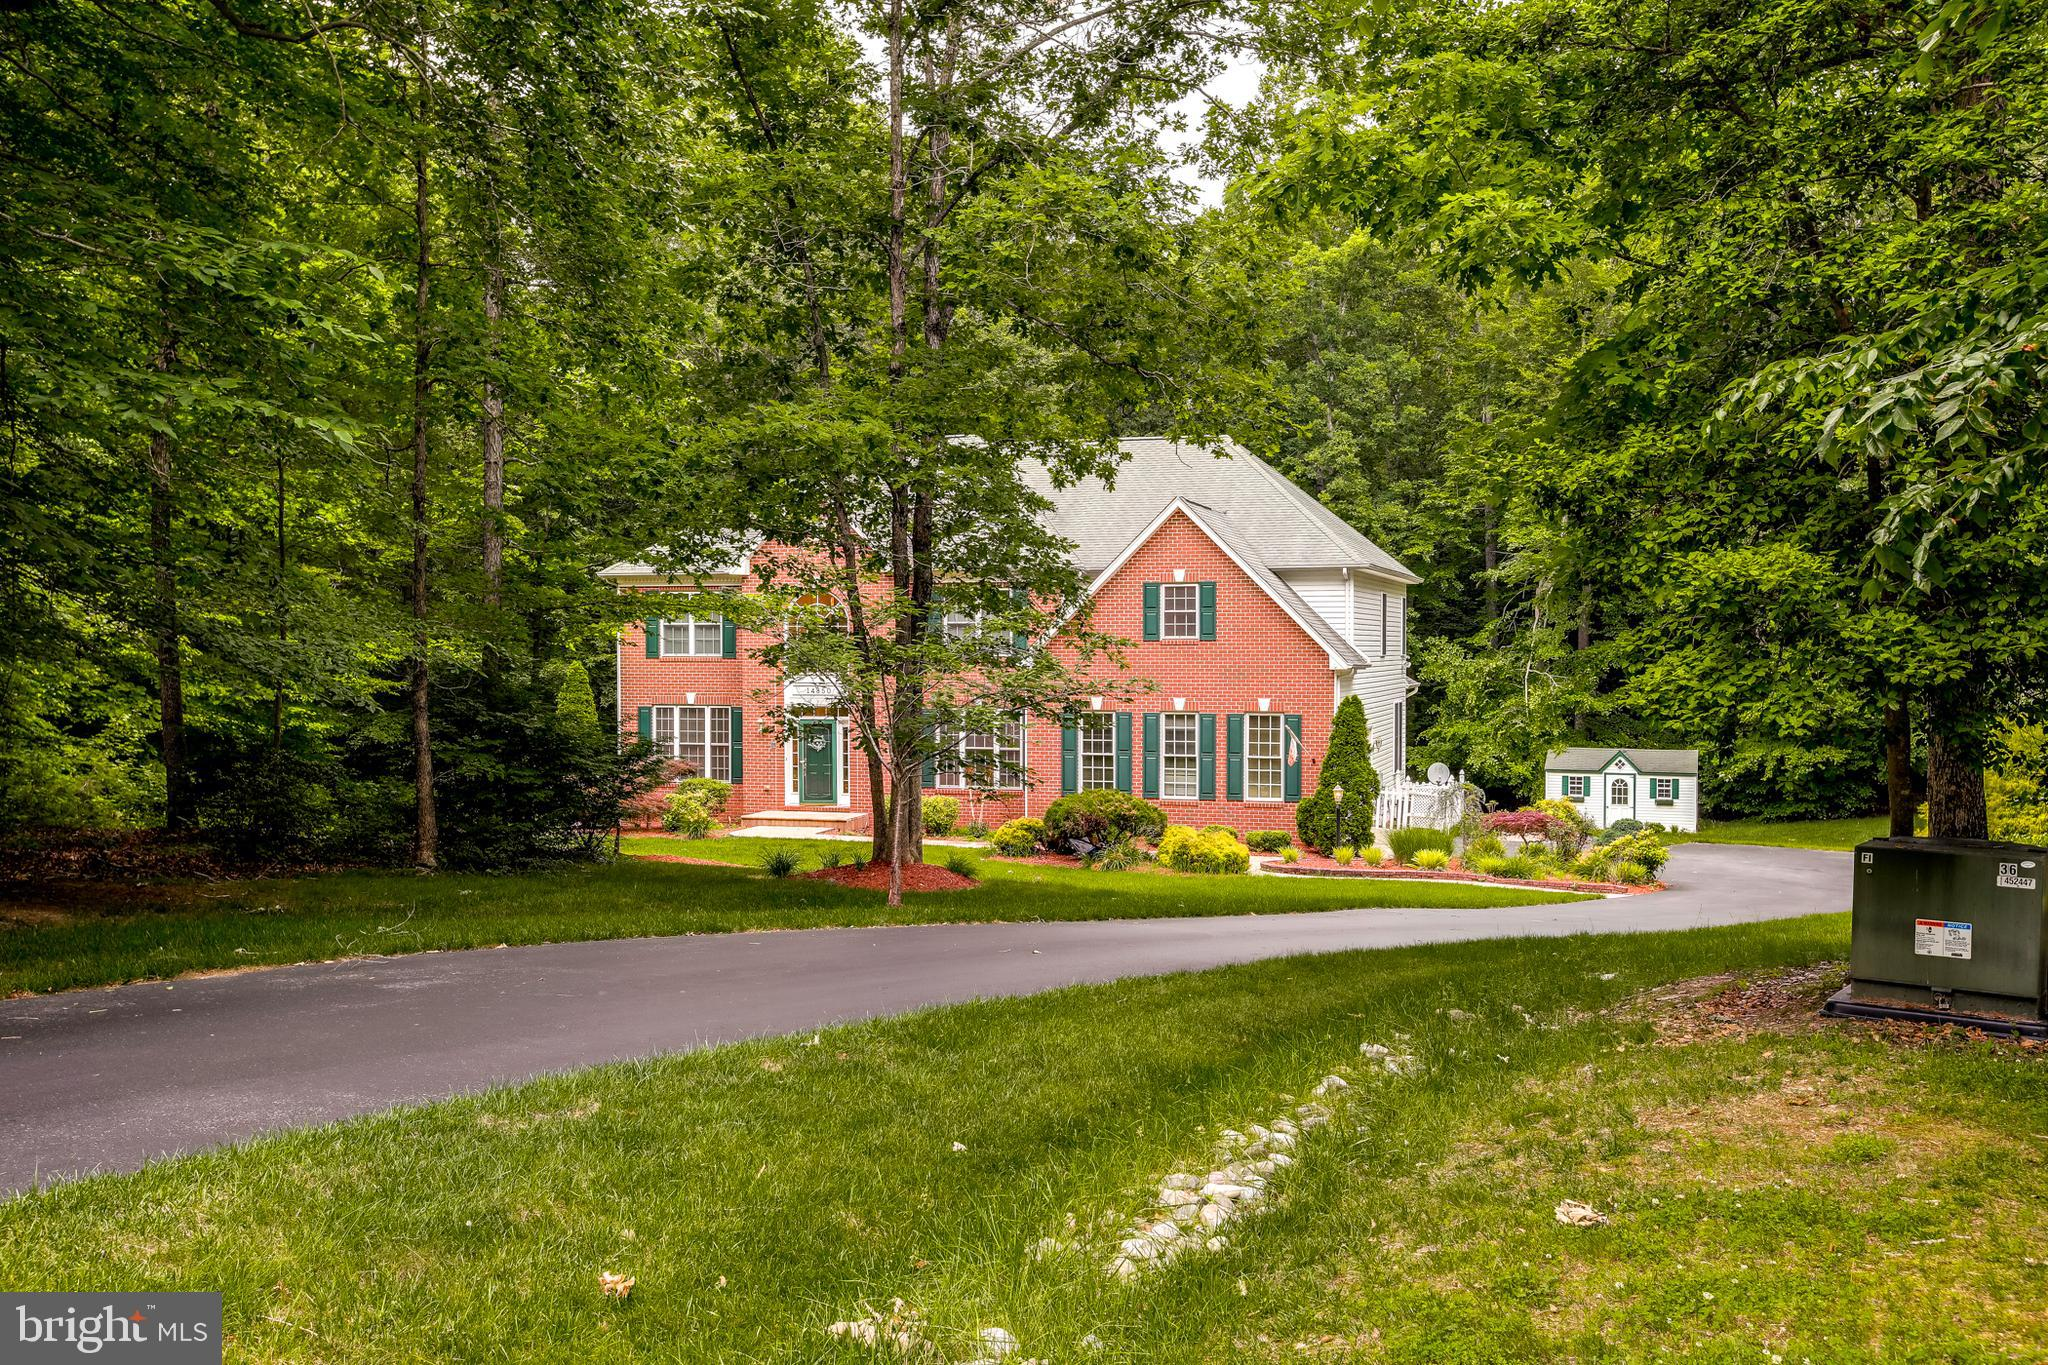 14850 AUGUSTA CLASSIC PLACE, HUGHESVILLE, MD 20637